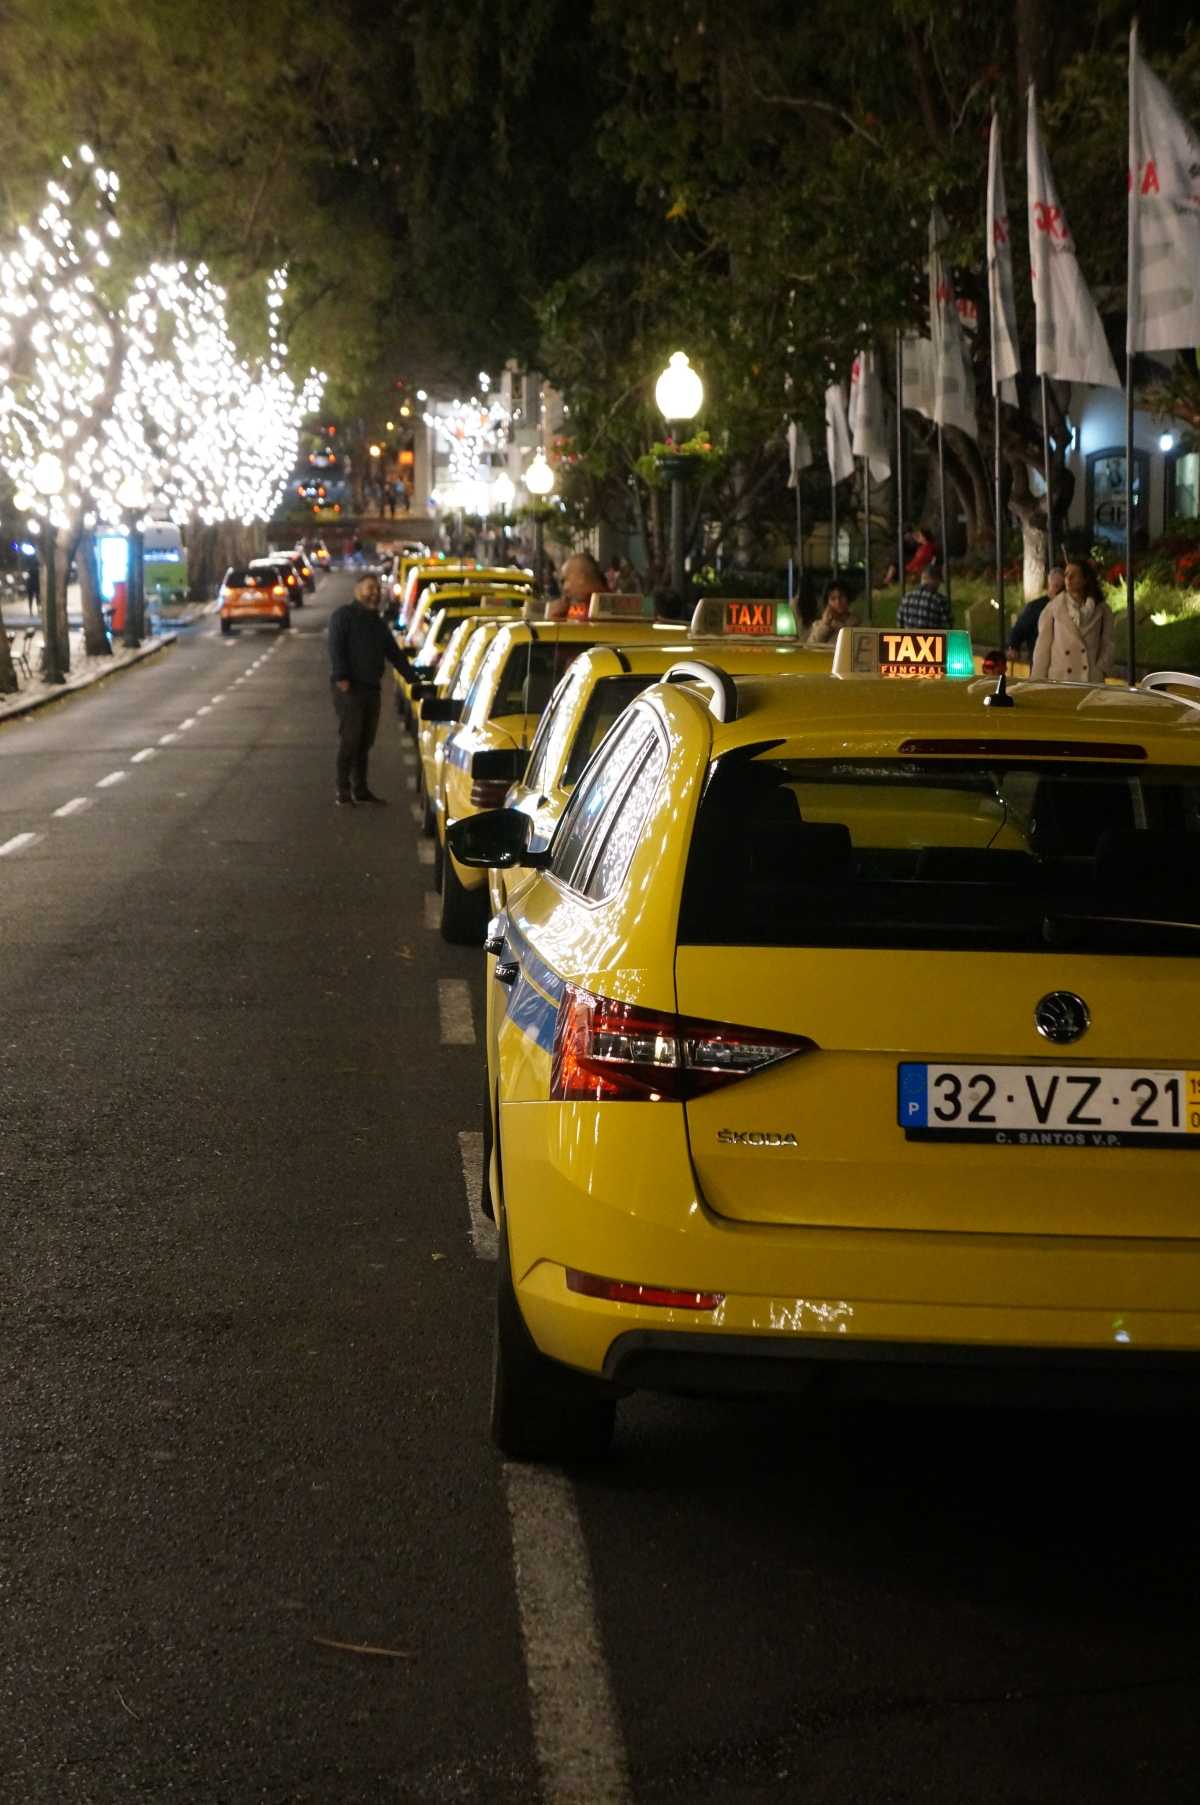 Taxis, lights, flags: Things are ramping up